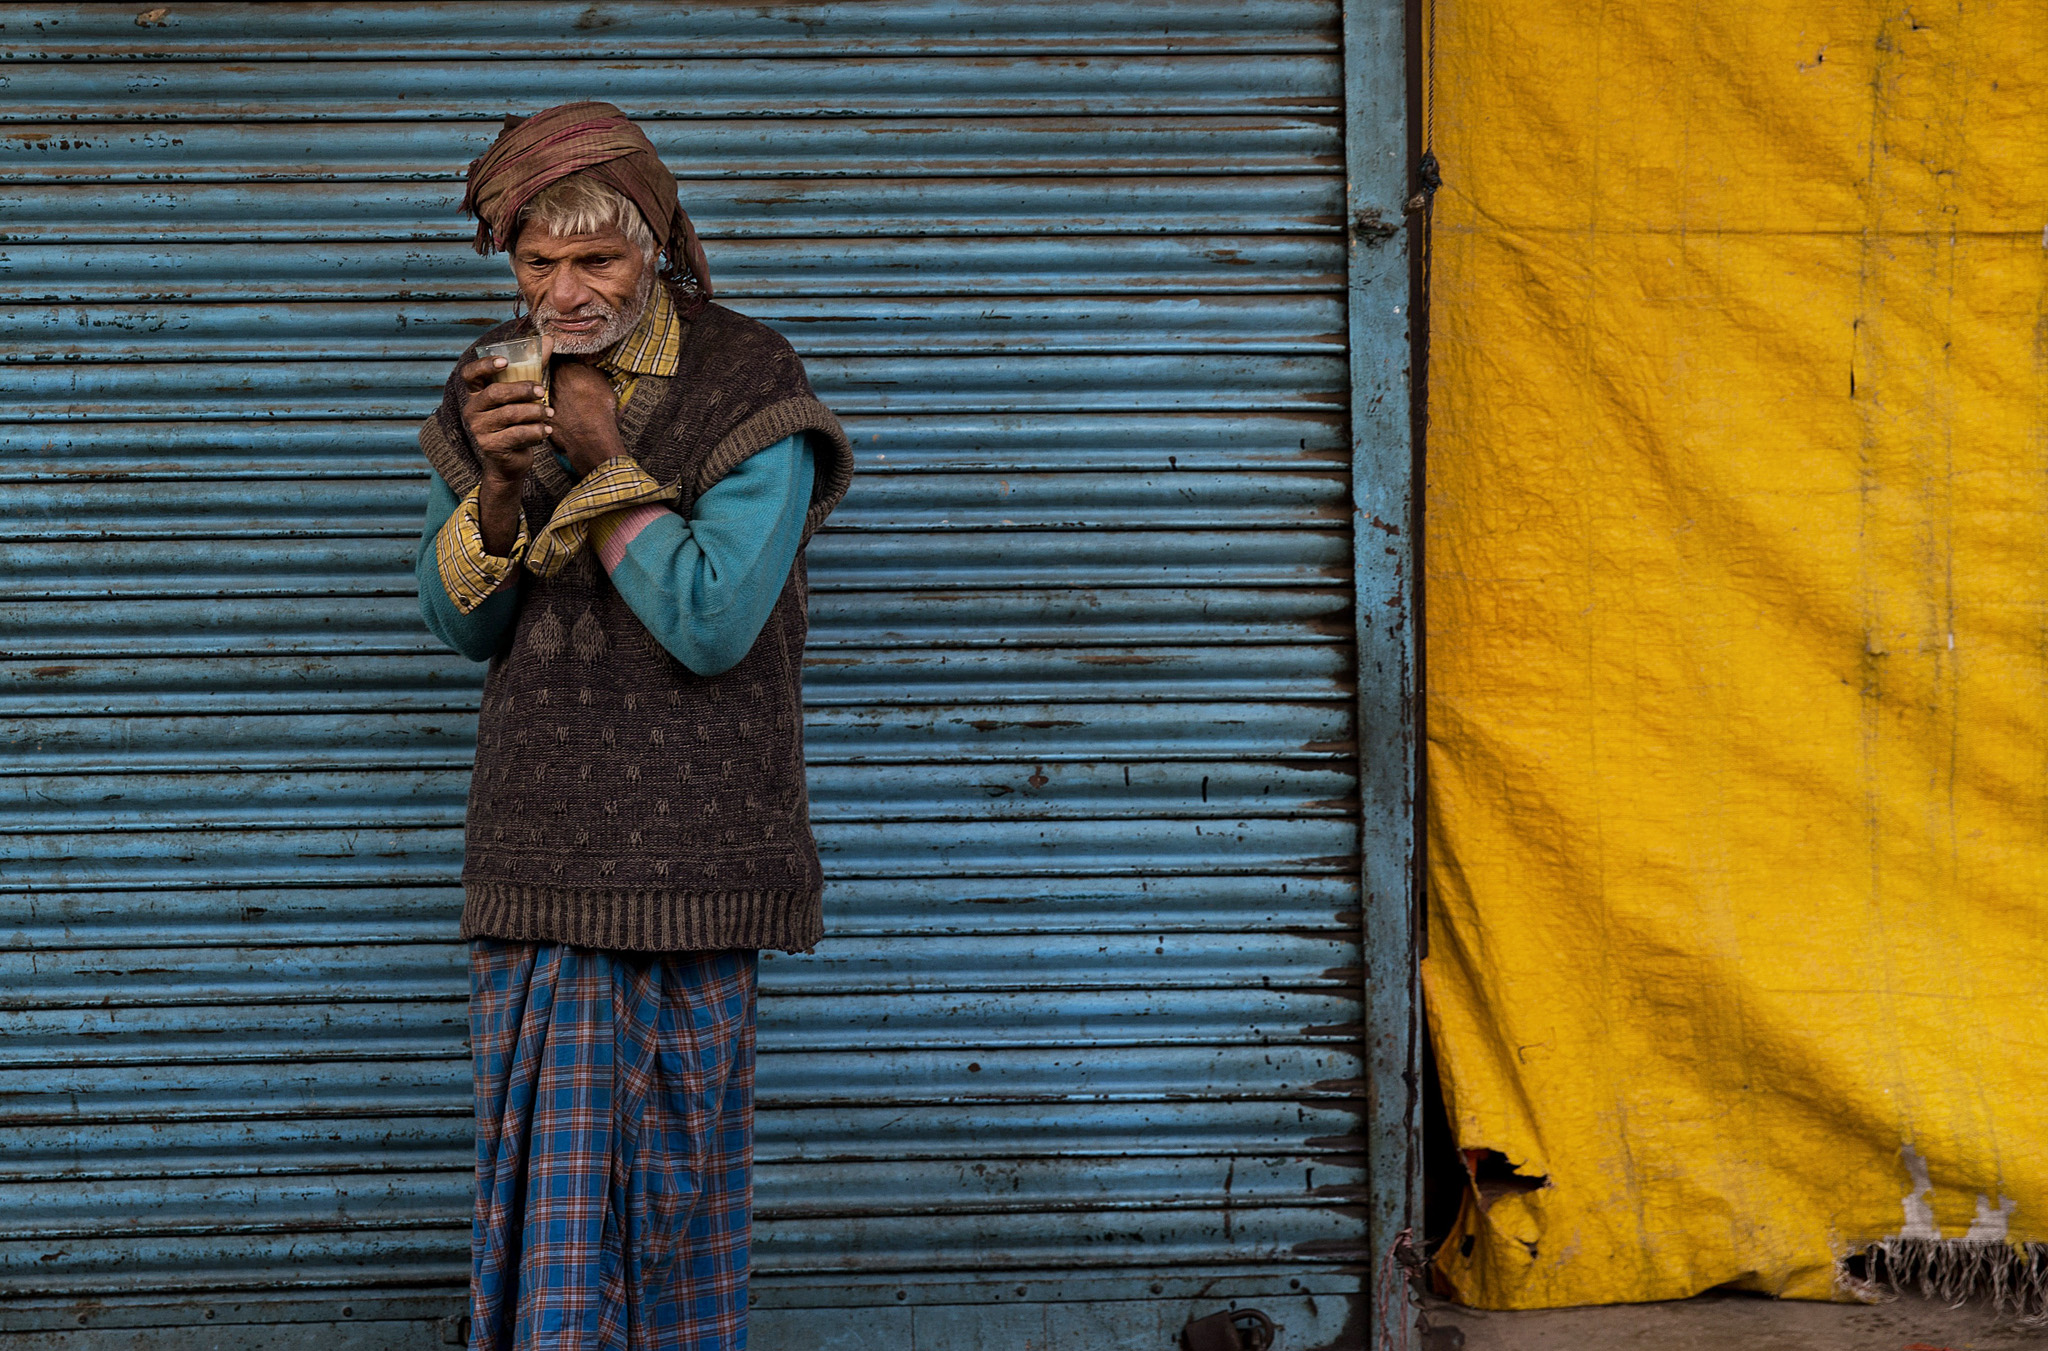 An Indian elderly man drinks tea to beat the cold early morning in old parts of New Delhi, India, Monday, Dec. 15, 2014. Cold wave conditions have intensified in the capital after scattered rains occurred in some parts of the city on Sunday, according to local reports. (AP Photo/Bernat Armangue)